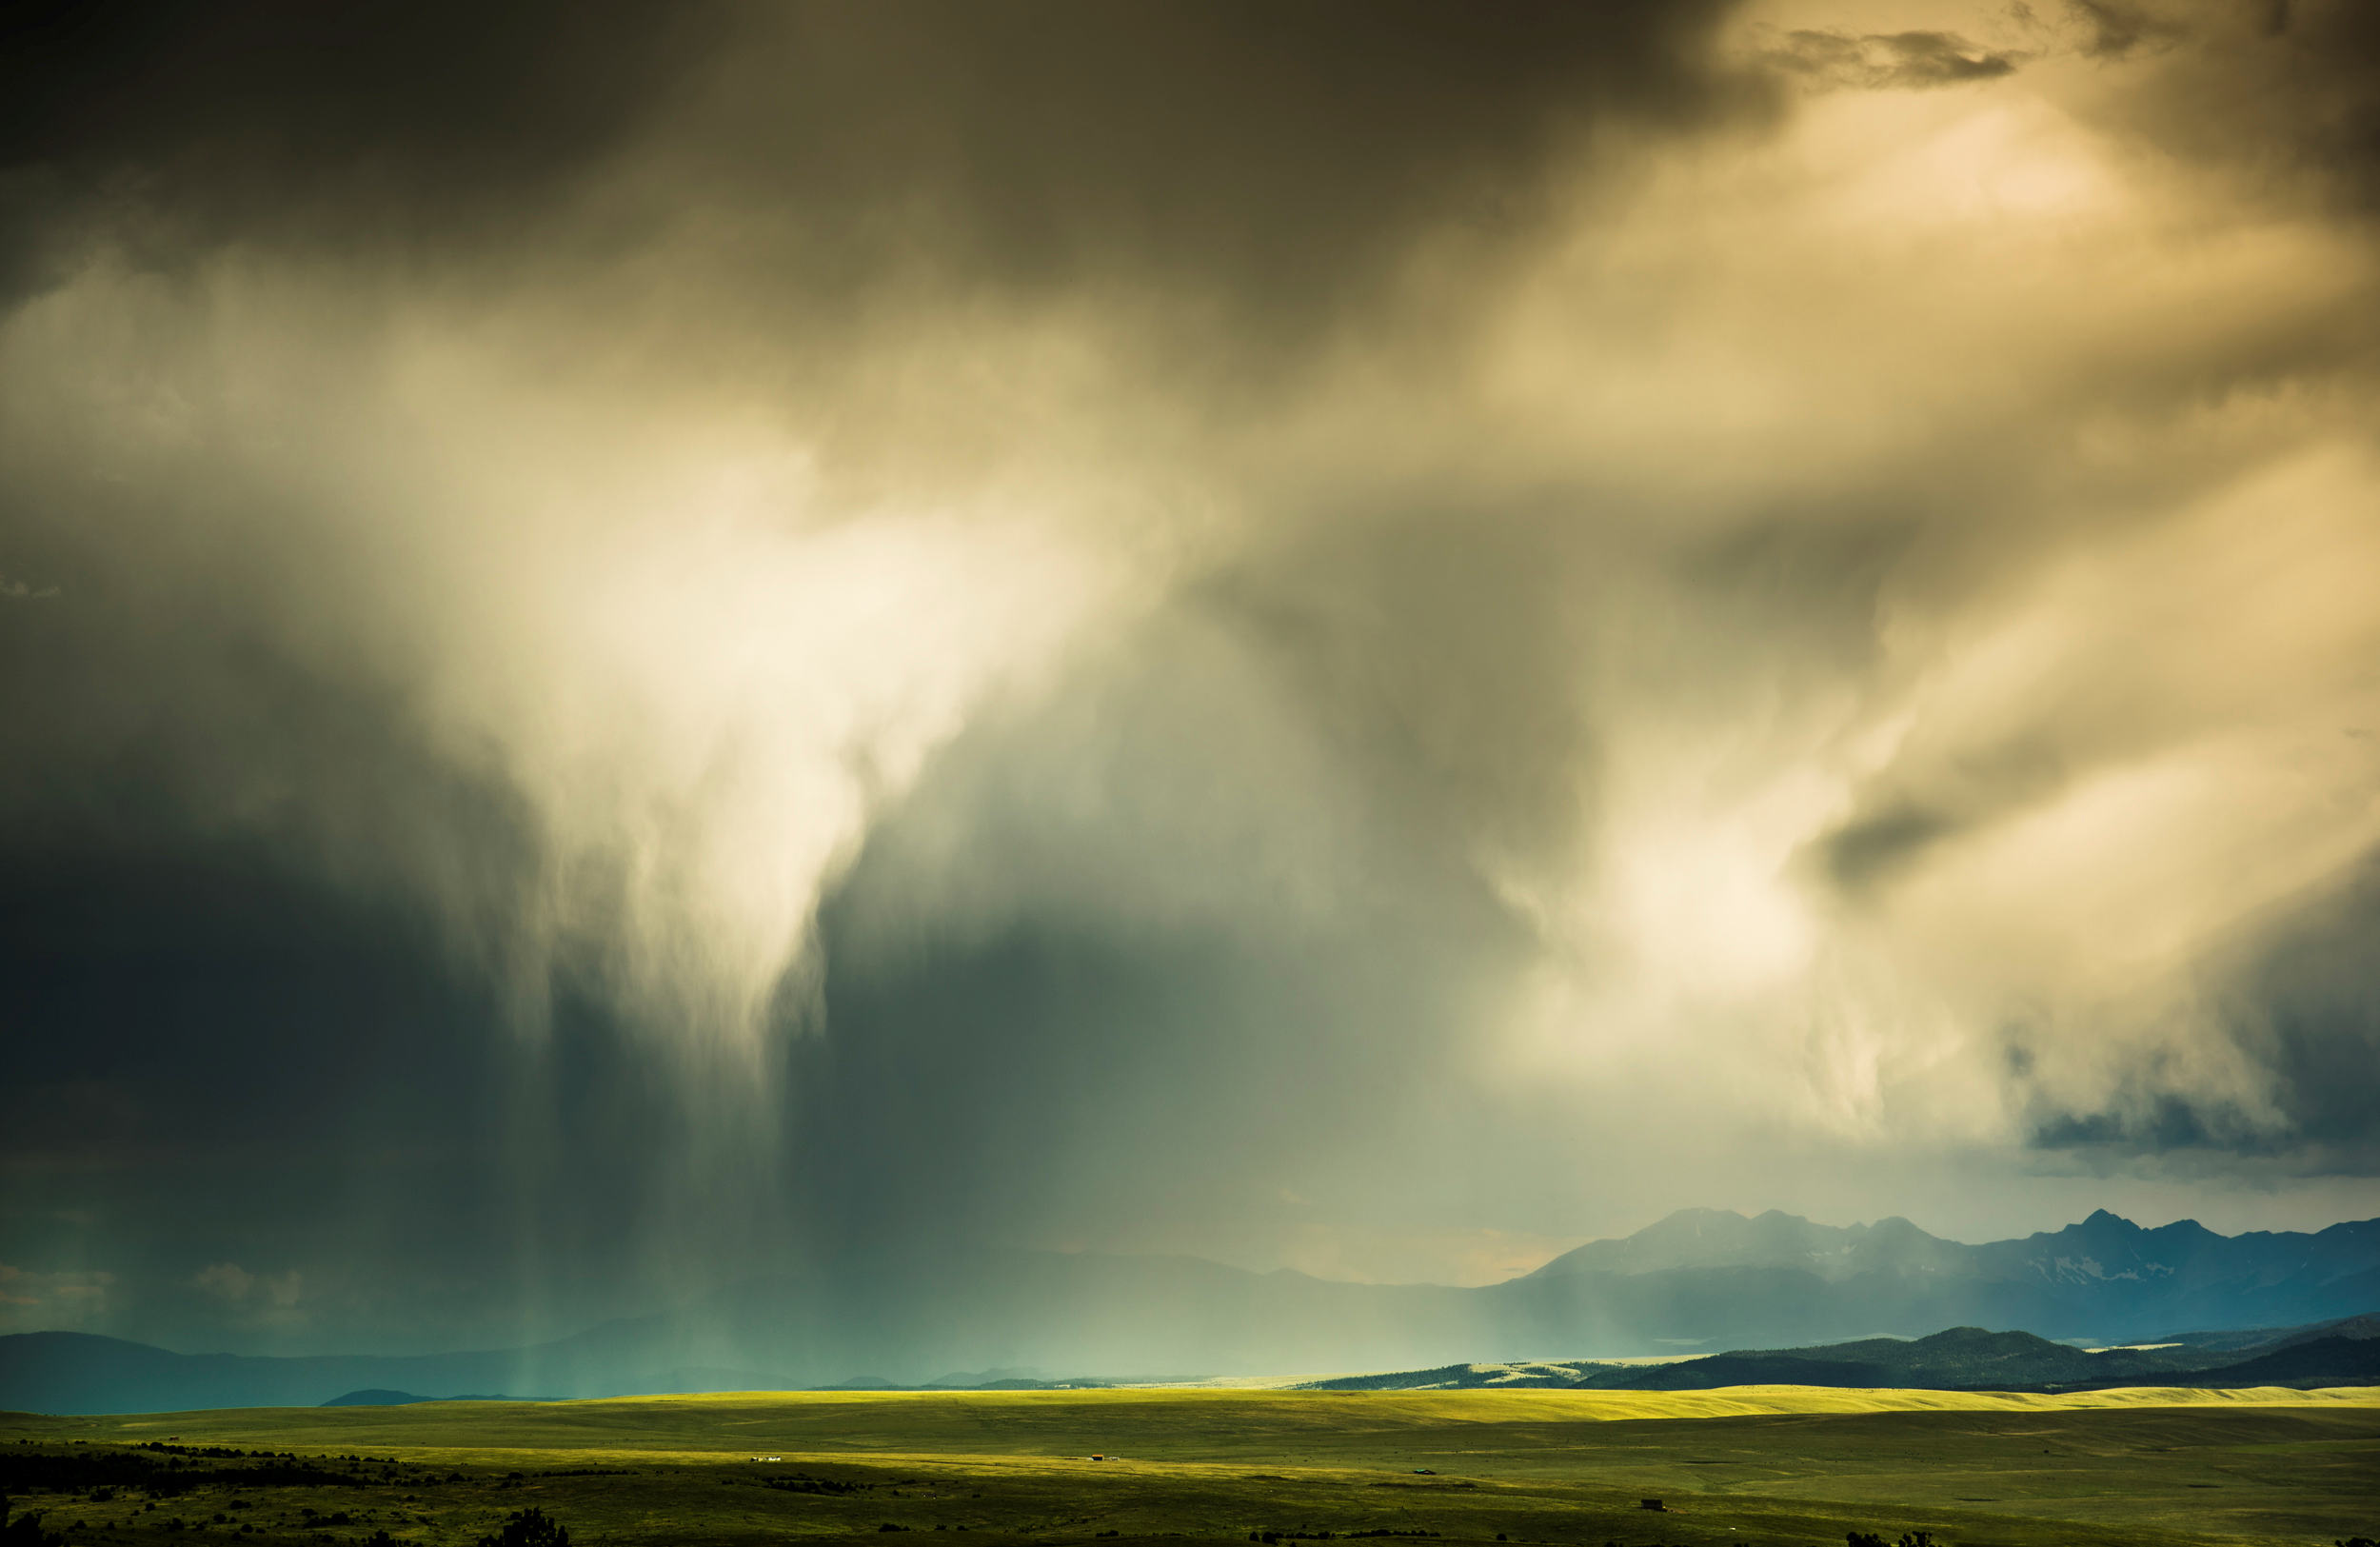 Summer Storm Over Valley.jpg